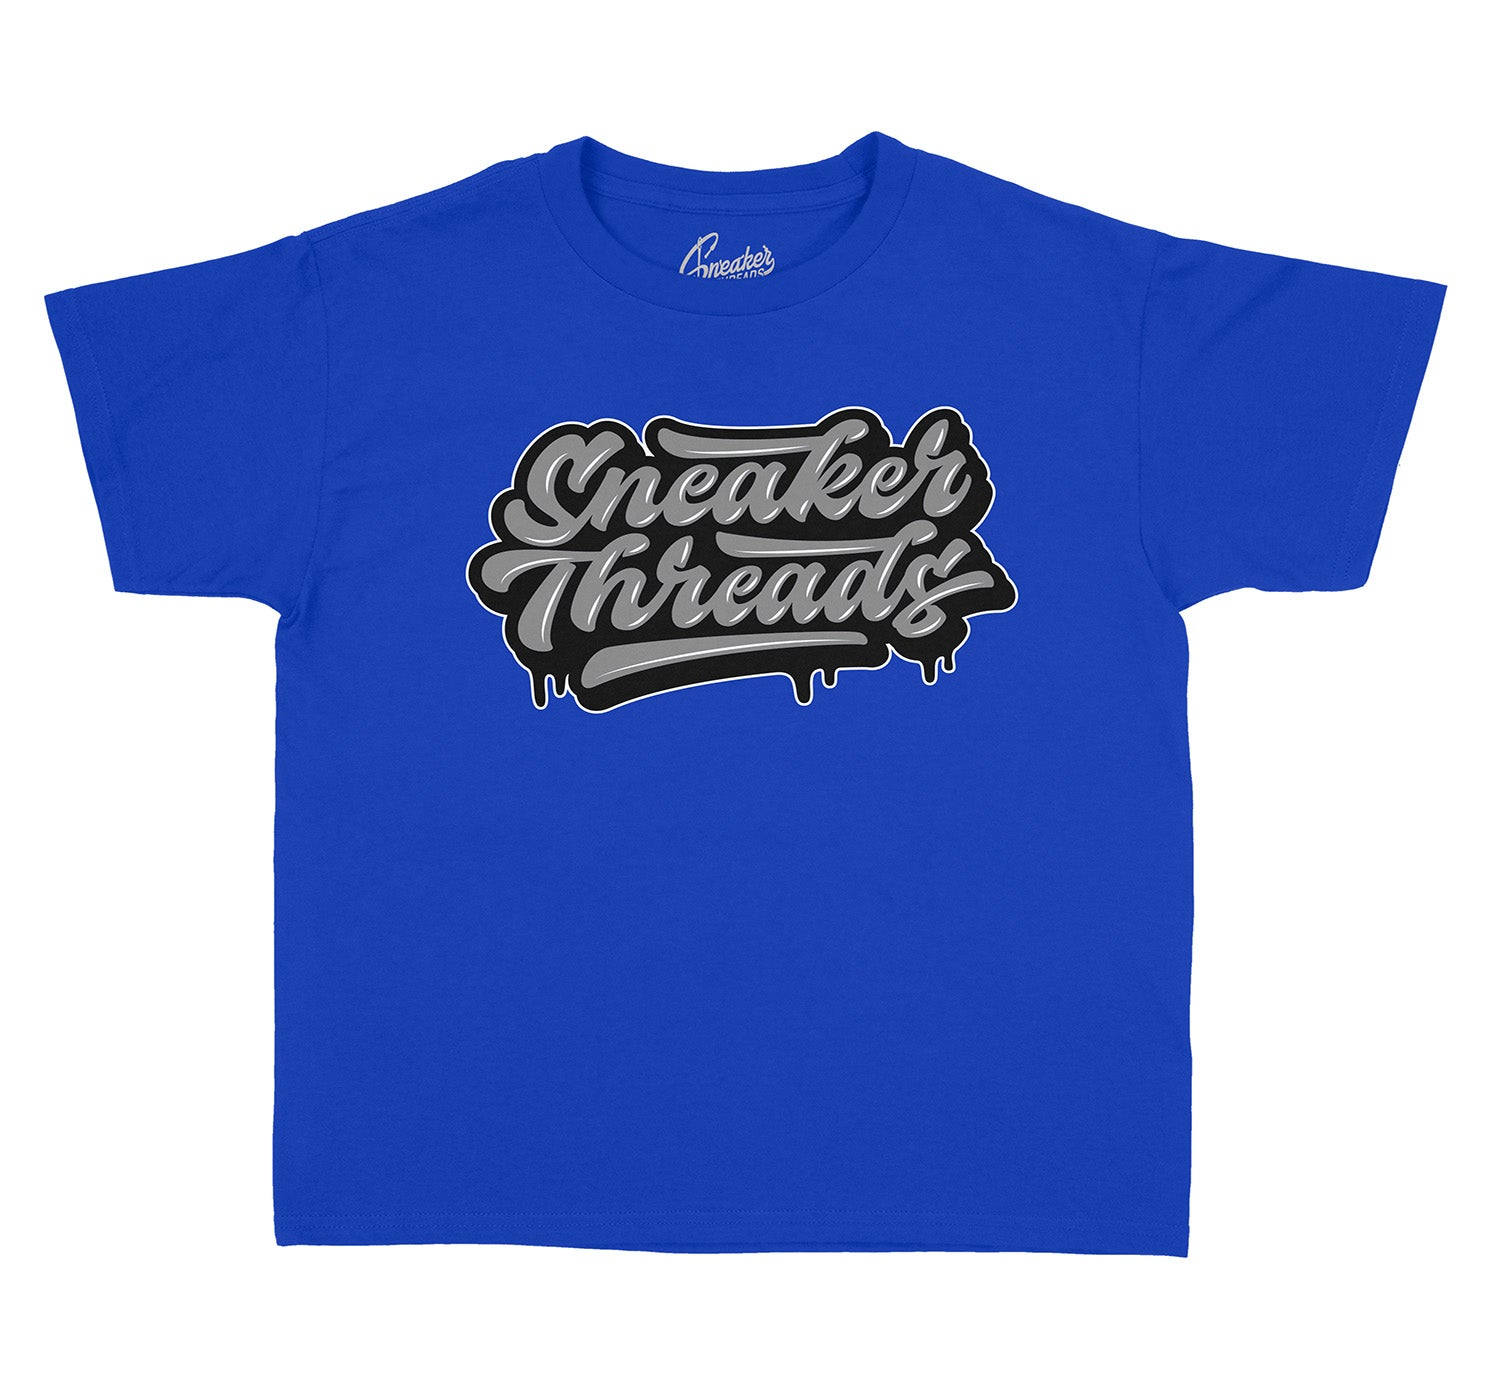 Boys tees matching with the Jordan 12 kids royal game sneakers